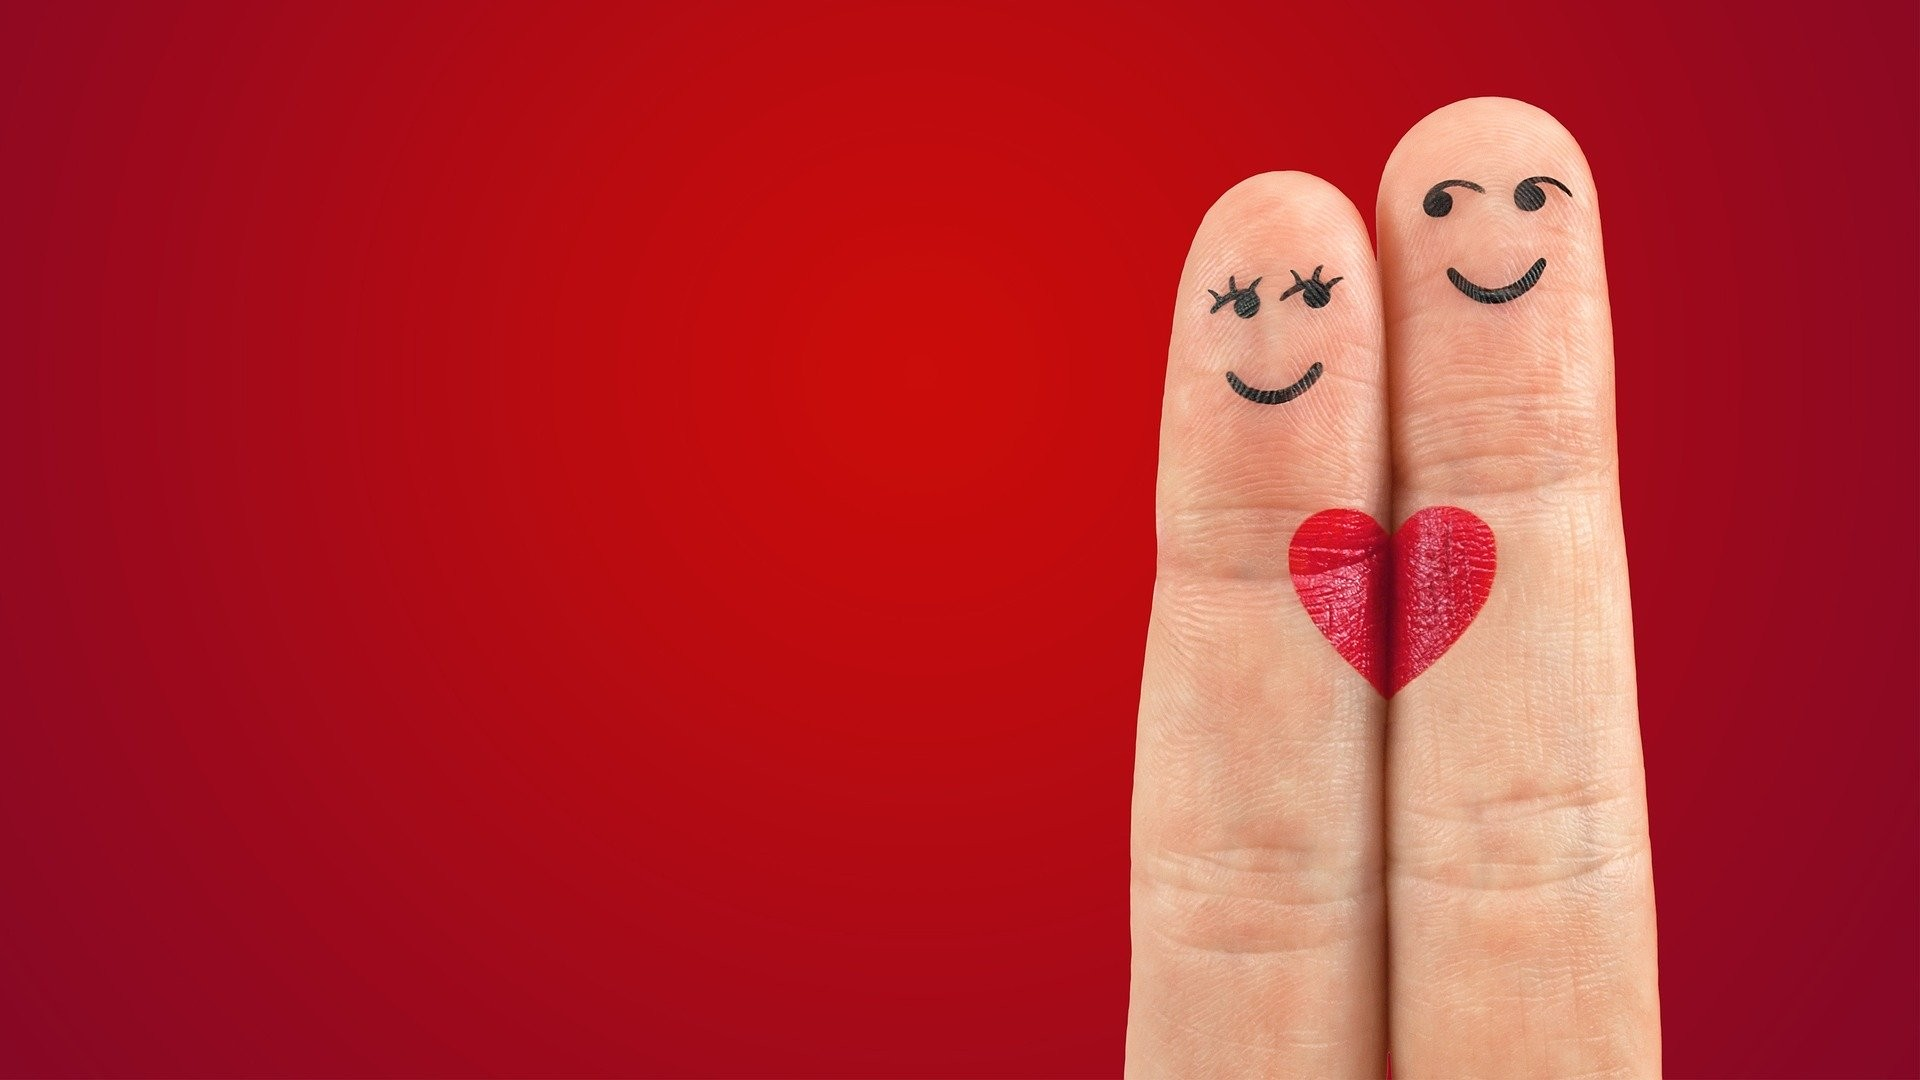 Why do we dedicate a day to celebrating love and friendship?